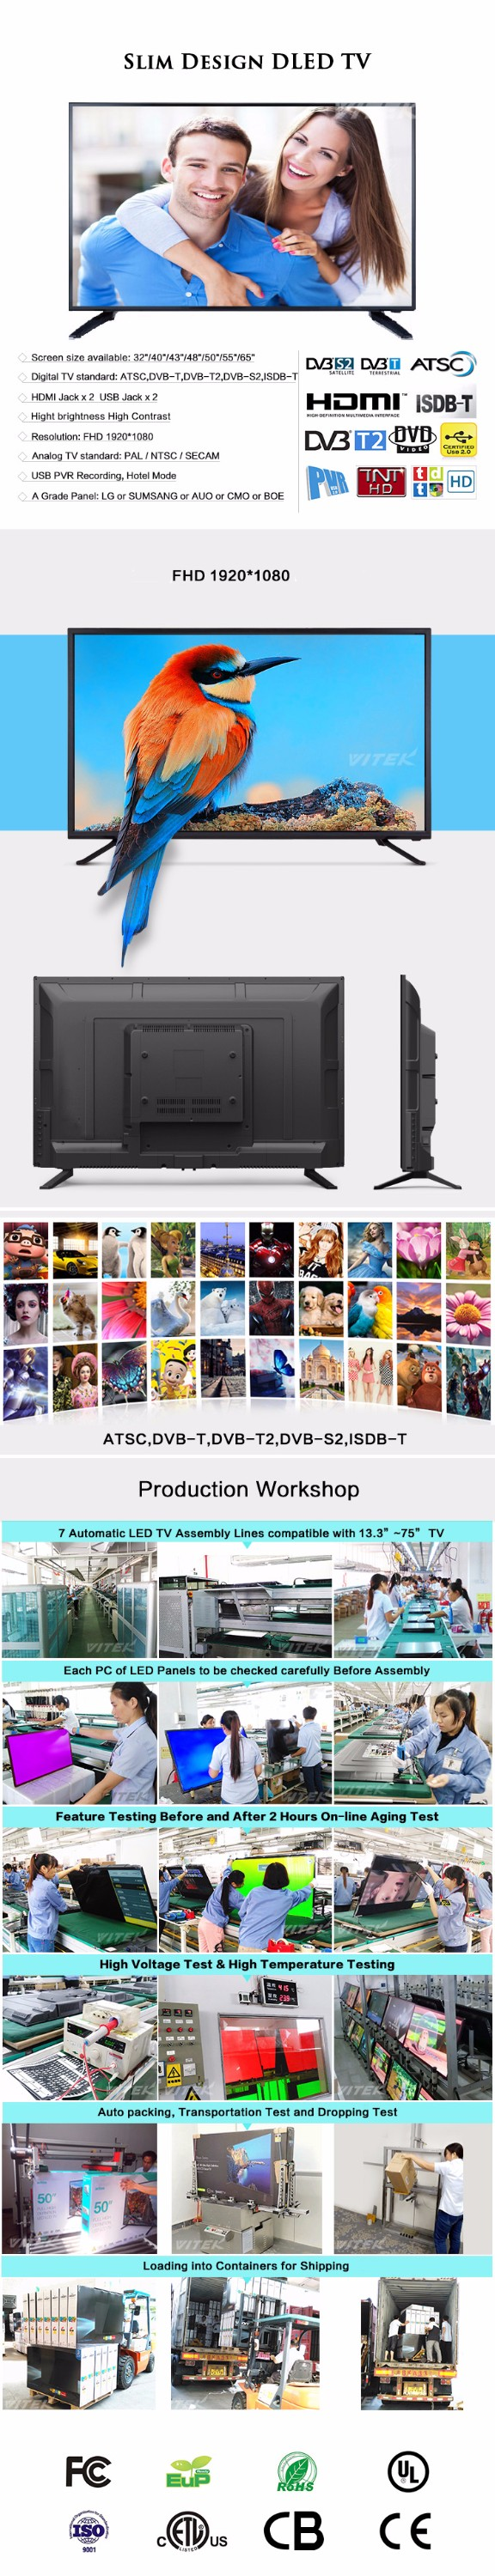 Looking For Distributor In Thailand 65 Inch Live Star Smart Led Tv - Buy  Led Tv 65 Inch Smart Tv,Live Star Tv,Looking For Distributor In Thailand